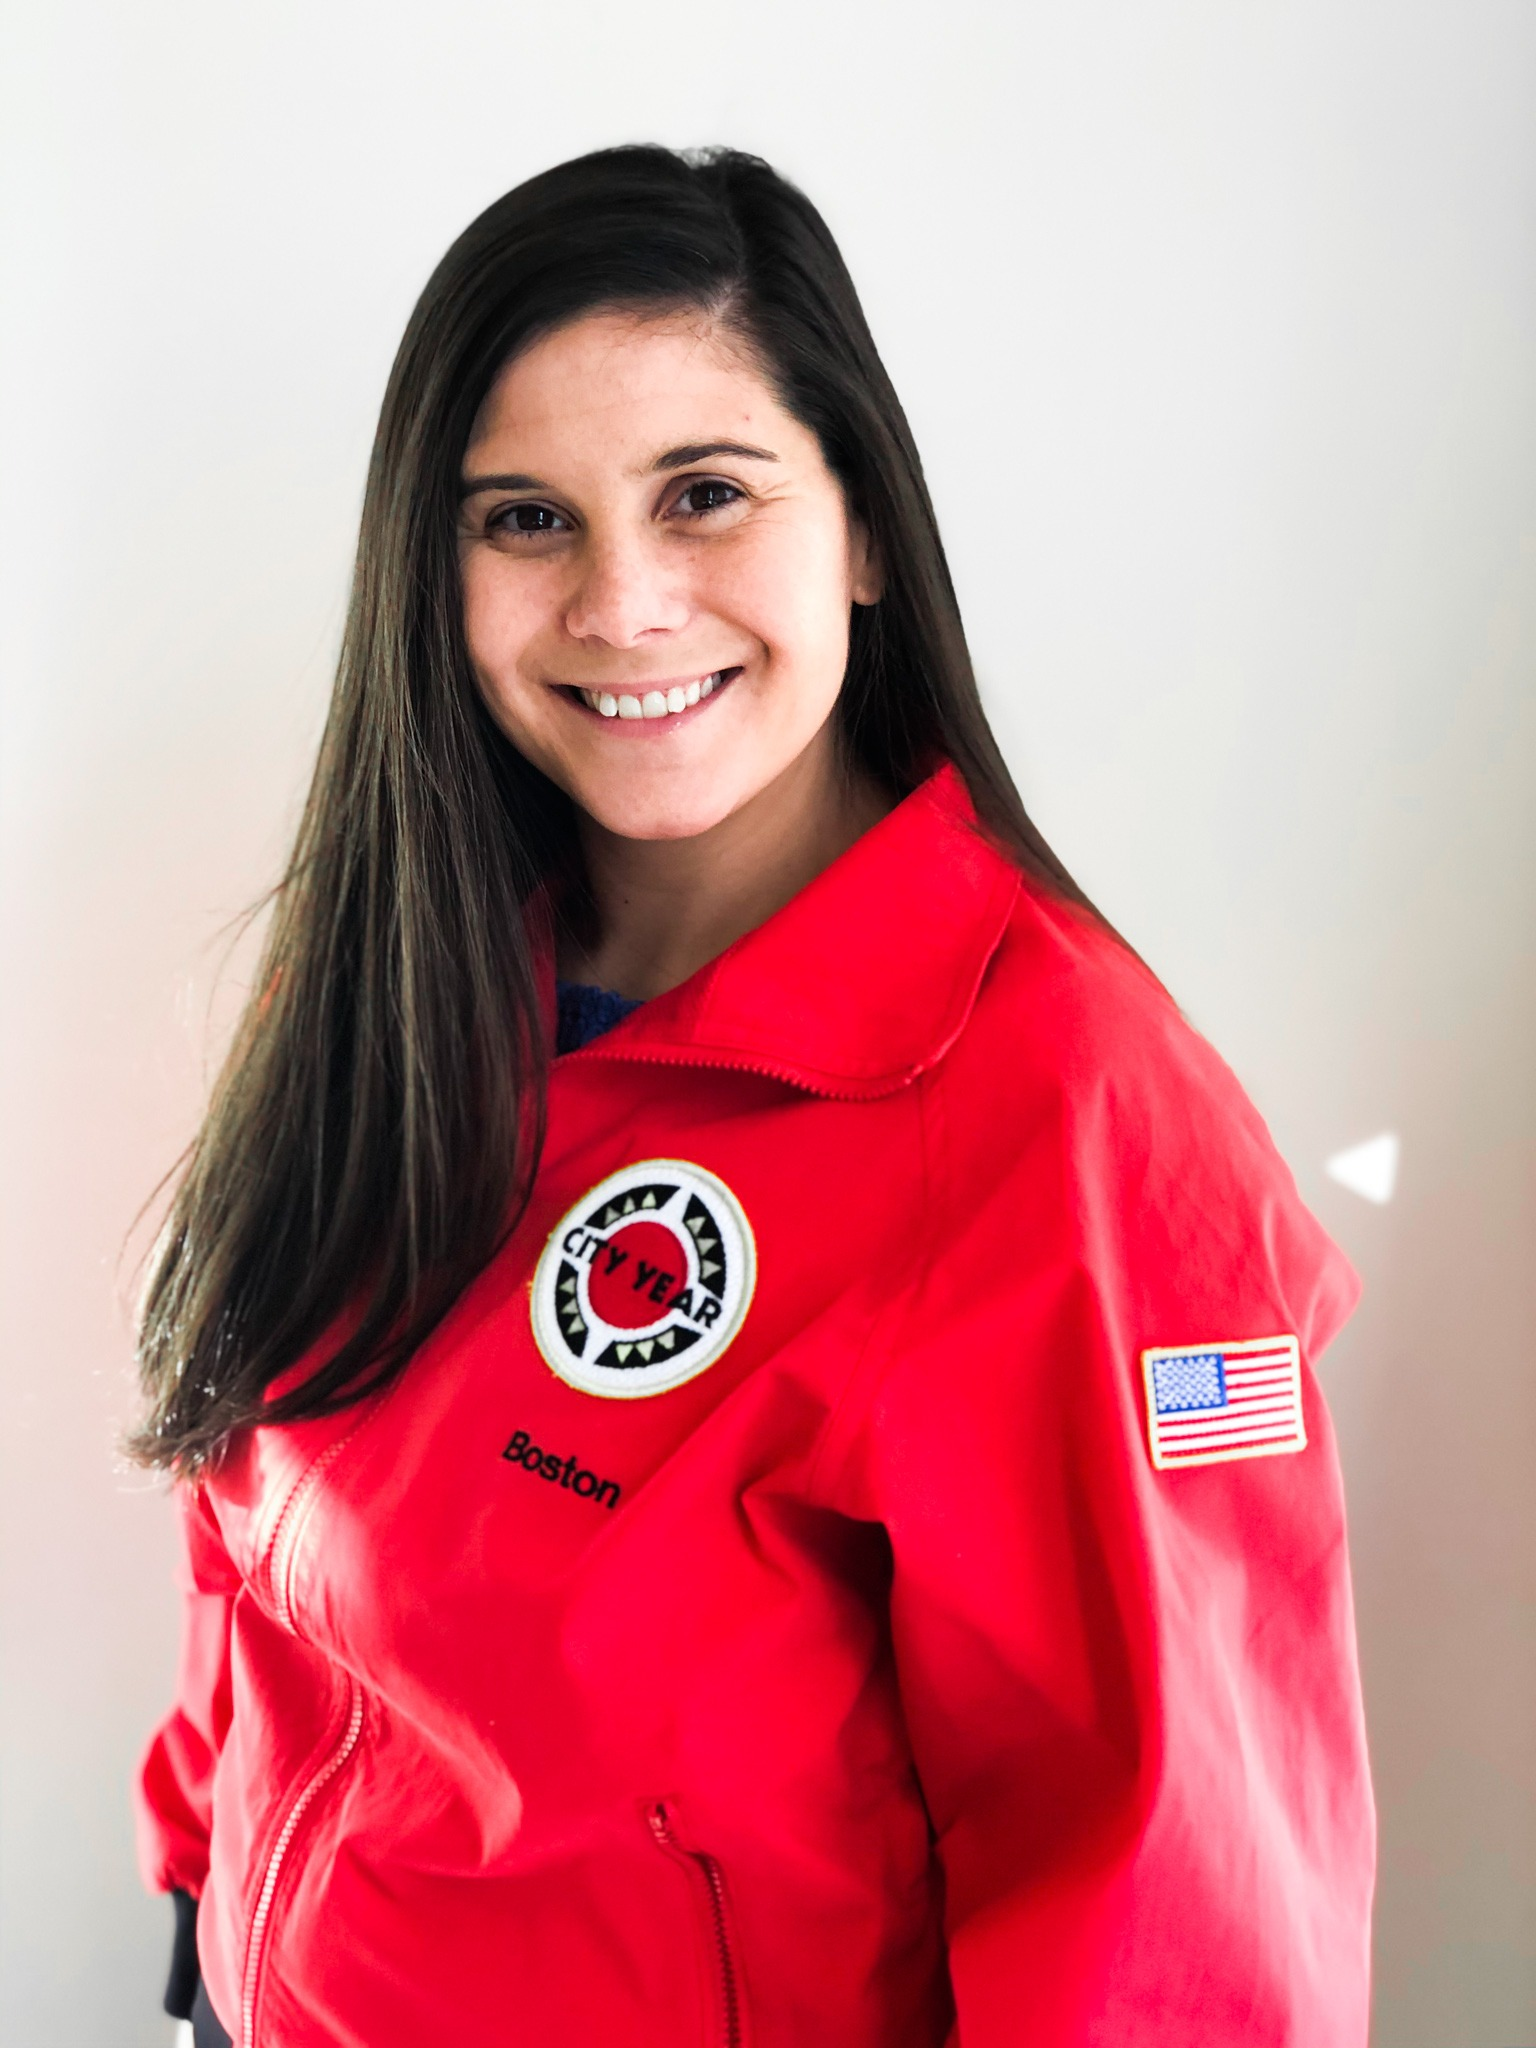 Briana Gochenour in a CY red jacket